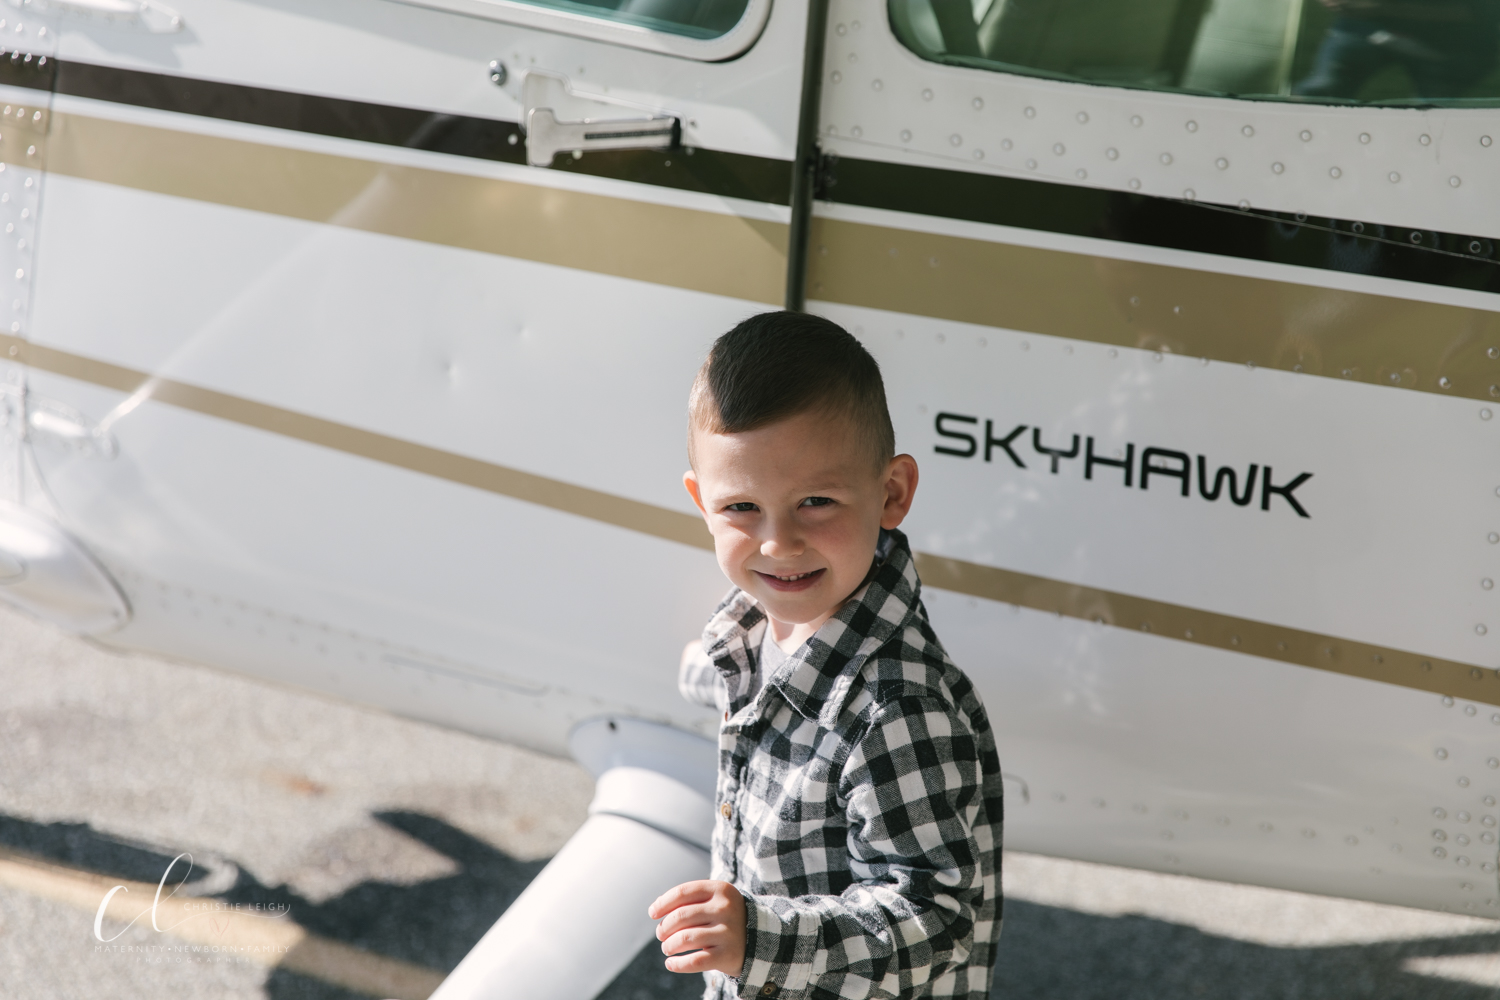 Aviation_Themed_Fourth_Birthday_at_Youngstown_Airport_Hanger_Vienna_OH_by_Child_and_Family_Photographer_Christie_Leigh_Photo-3.JPG